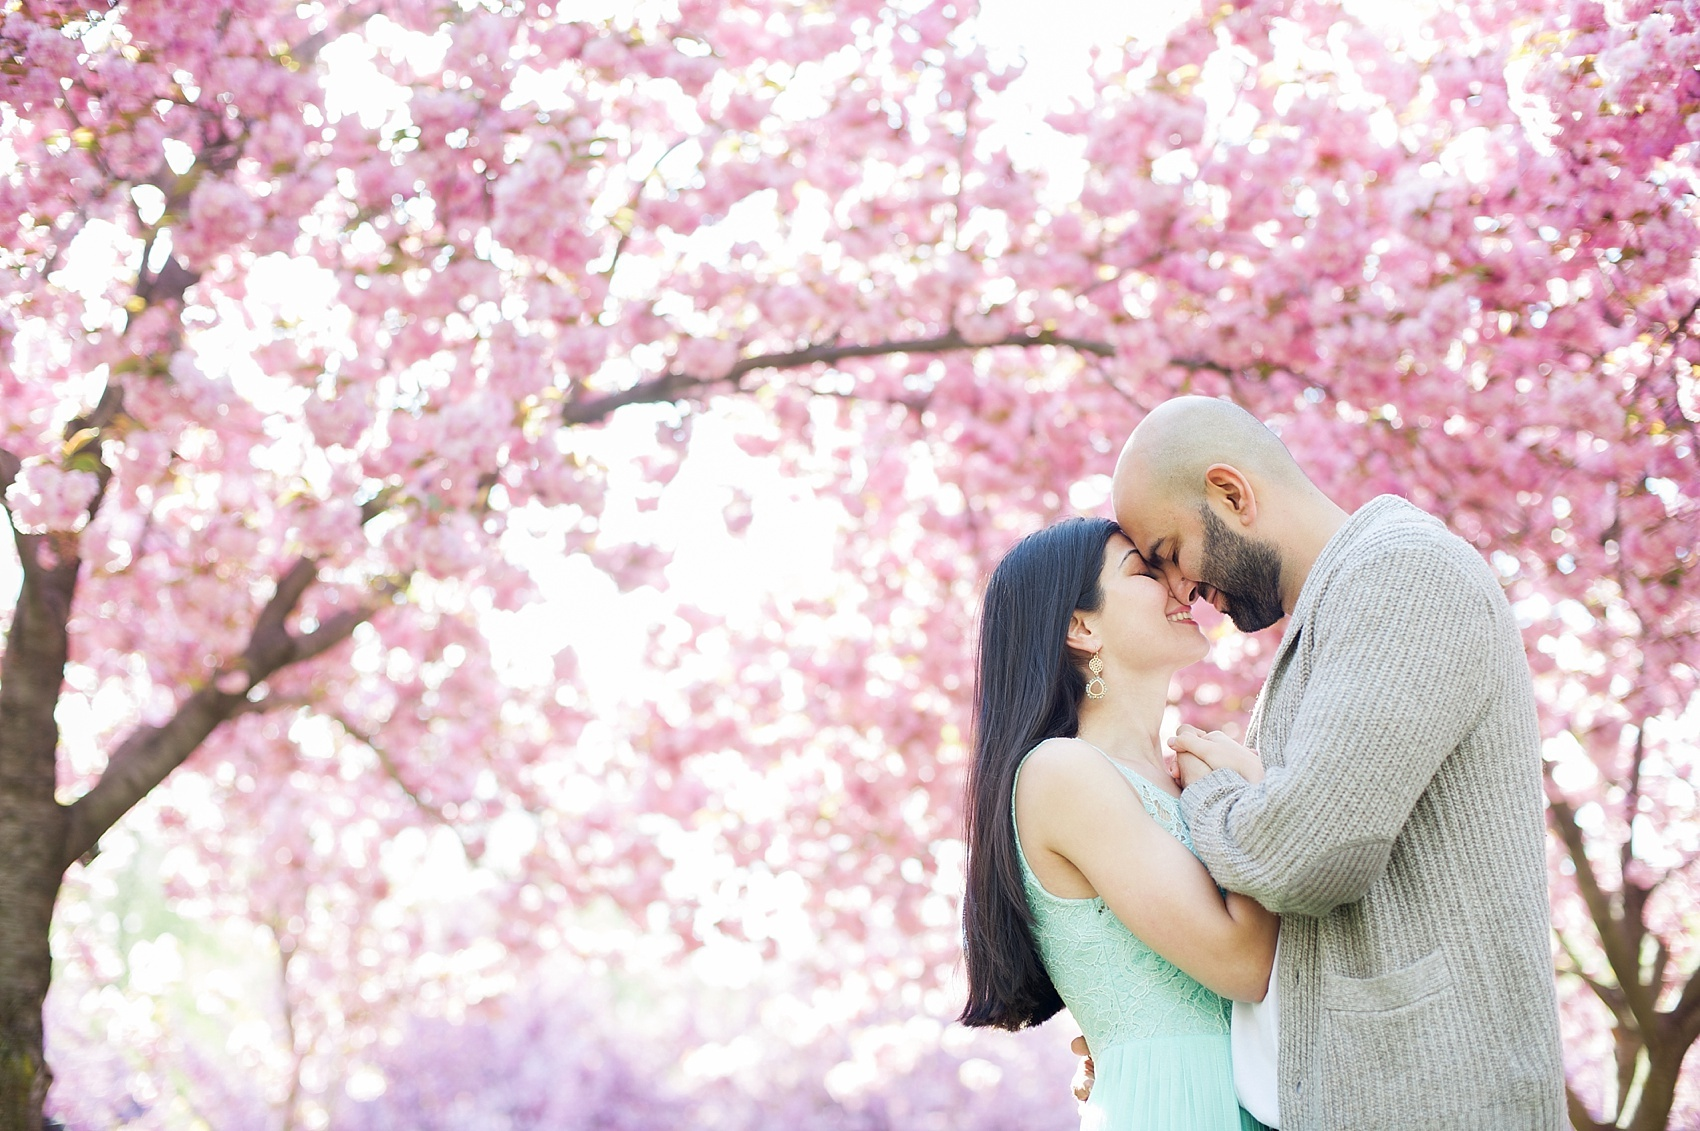 10-mikkelpaige-leyla_beejan-brooklyn_botanical_cherry_blossoms